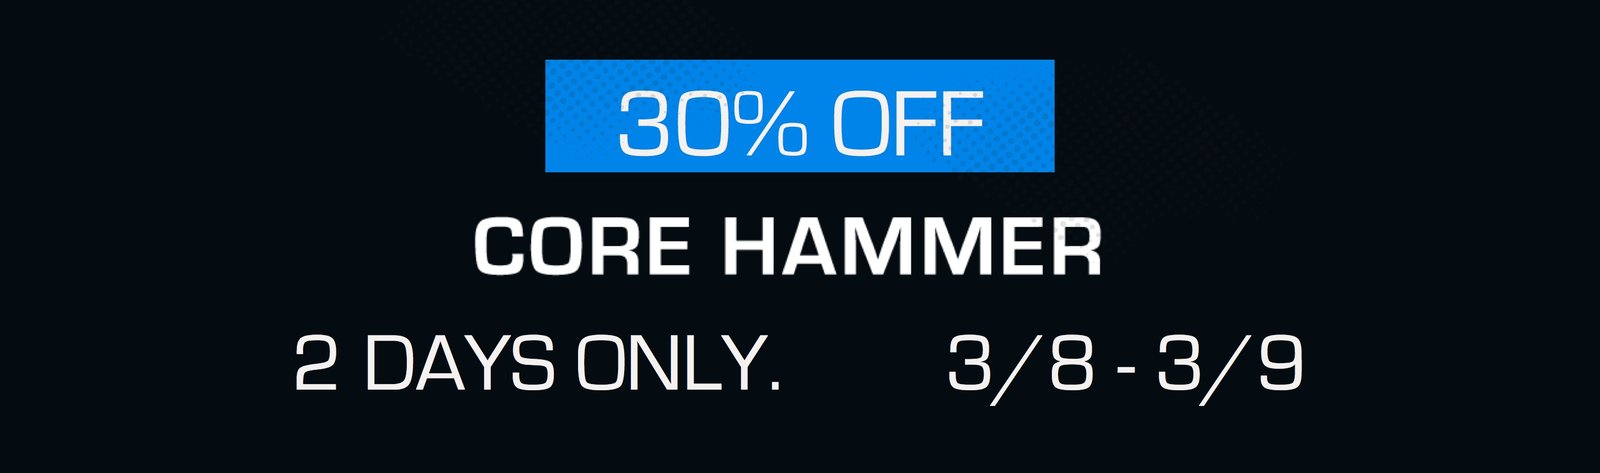 Holiday Hammertime Sale at MostFit with 15% off Core Hammer and SYN Rings functional Training equipment